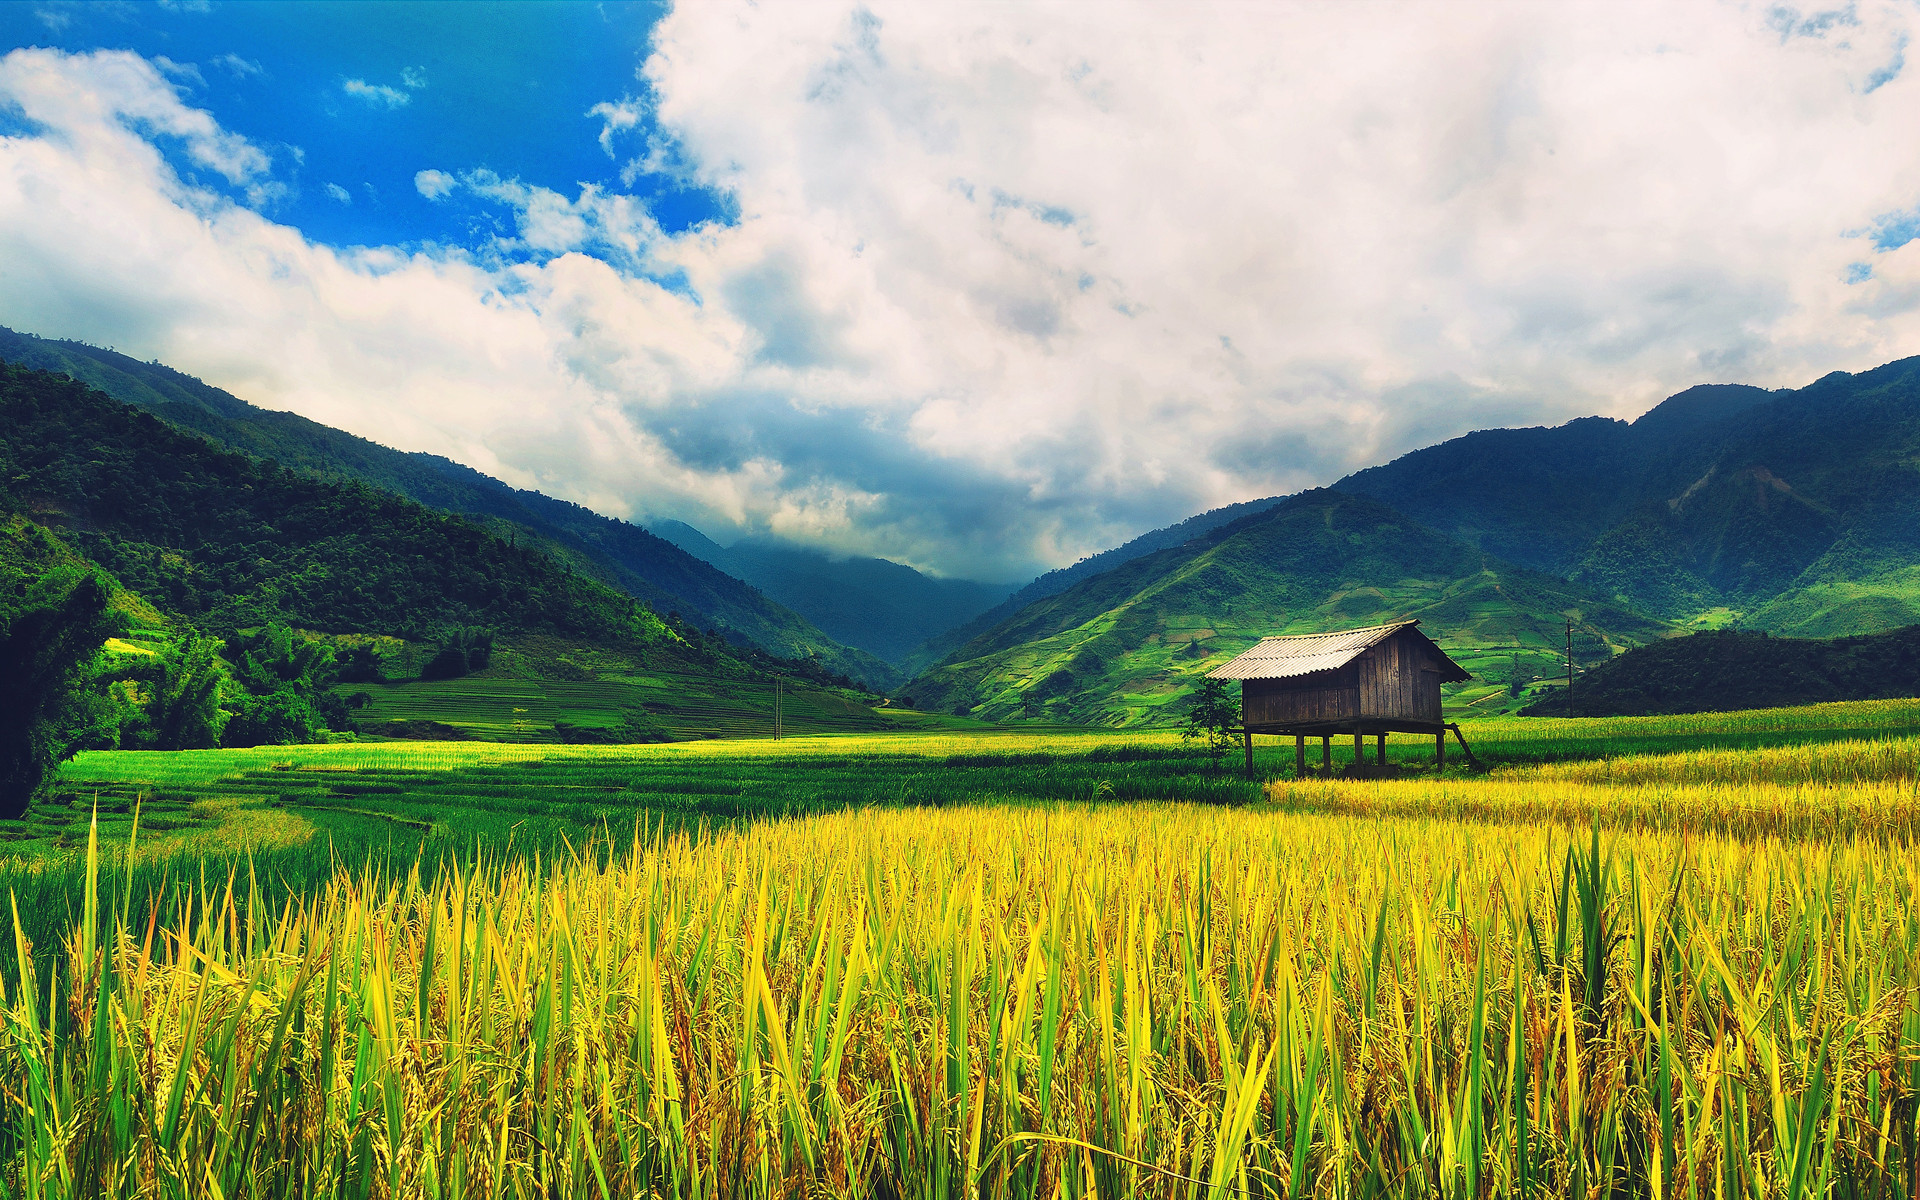 Rice Wallpaper Plants Nature (41 Wallpapers)